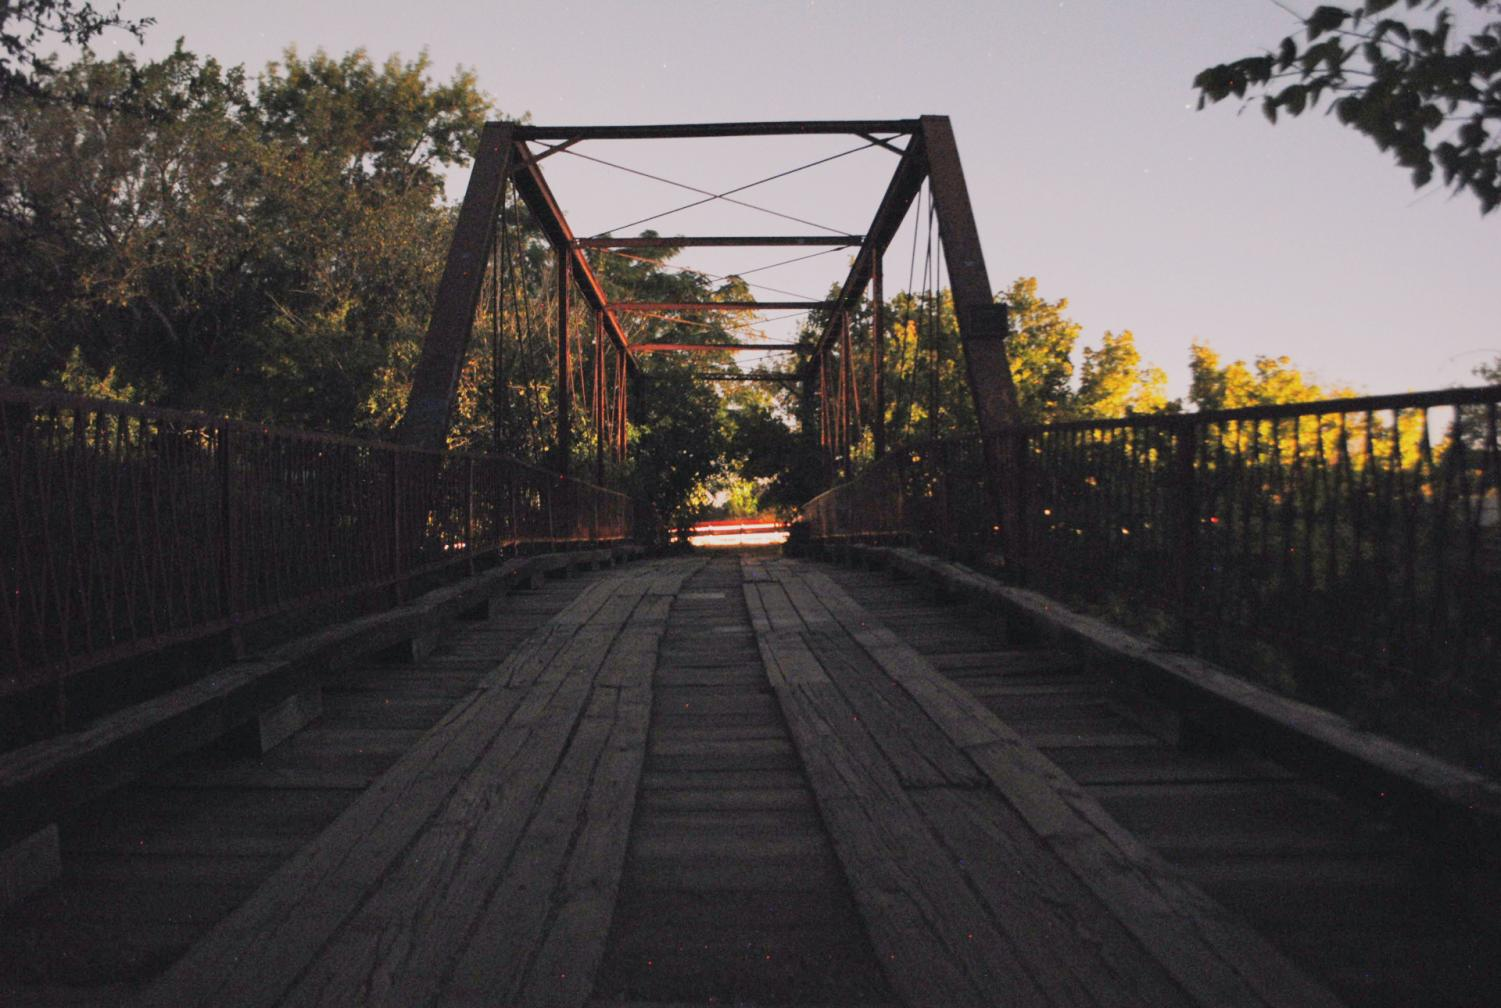 View of Old Alton Bridge at dusk, also known as the Goatman Bridge.